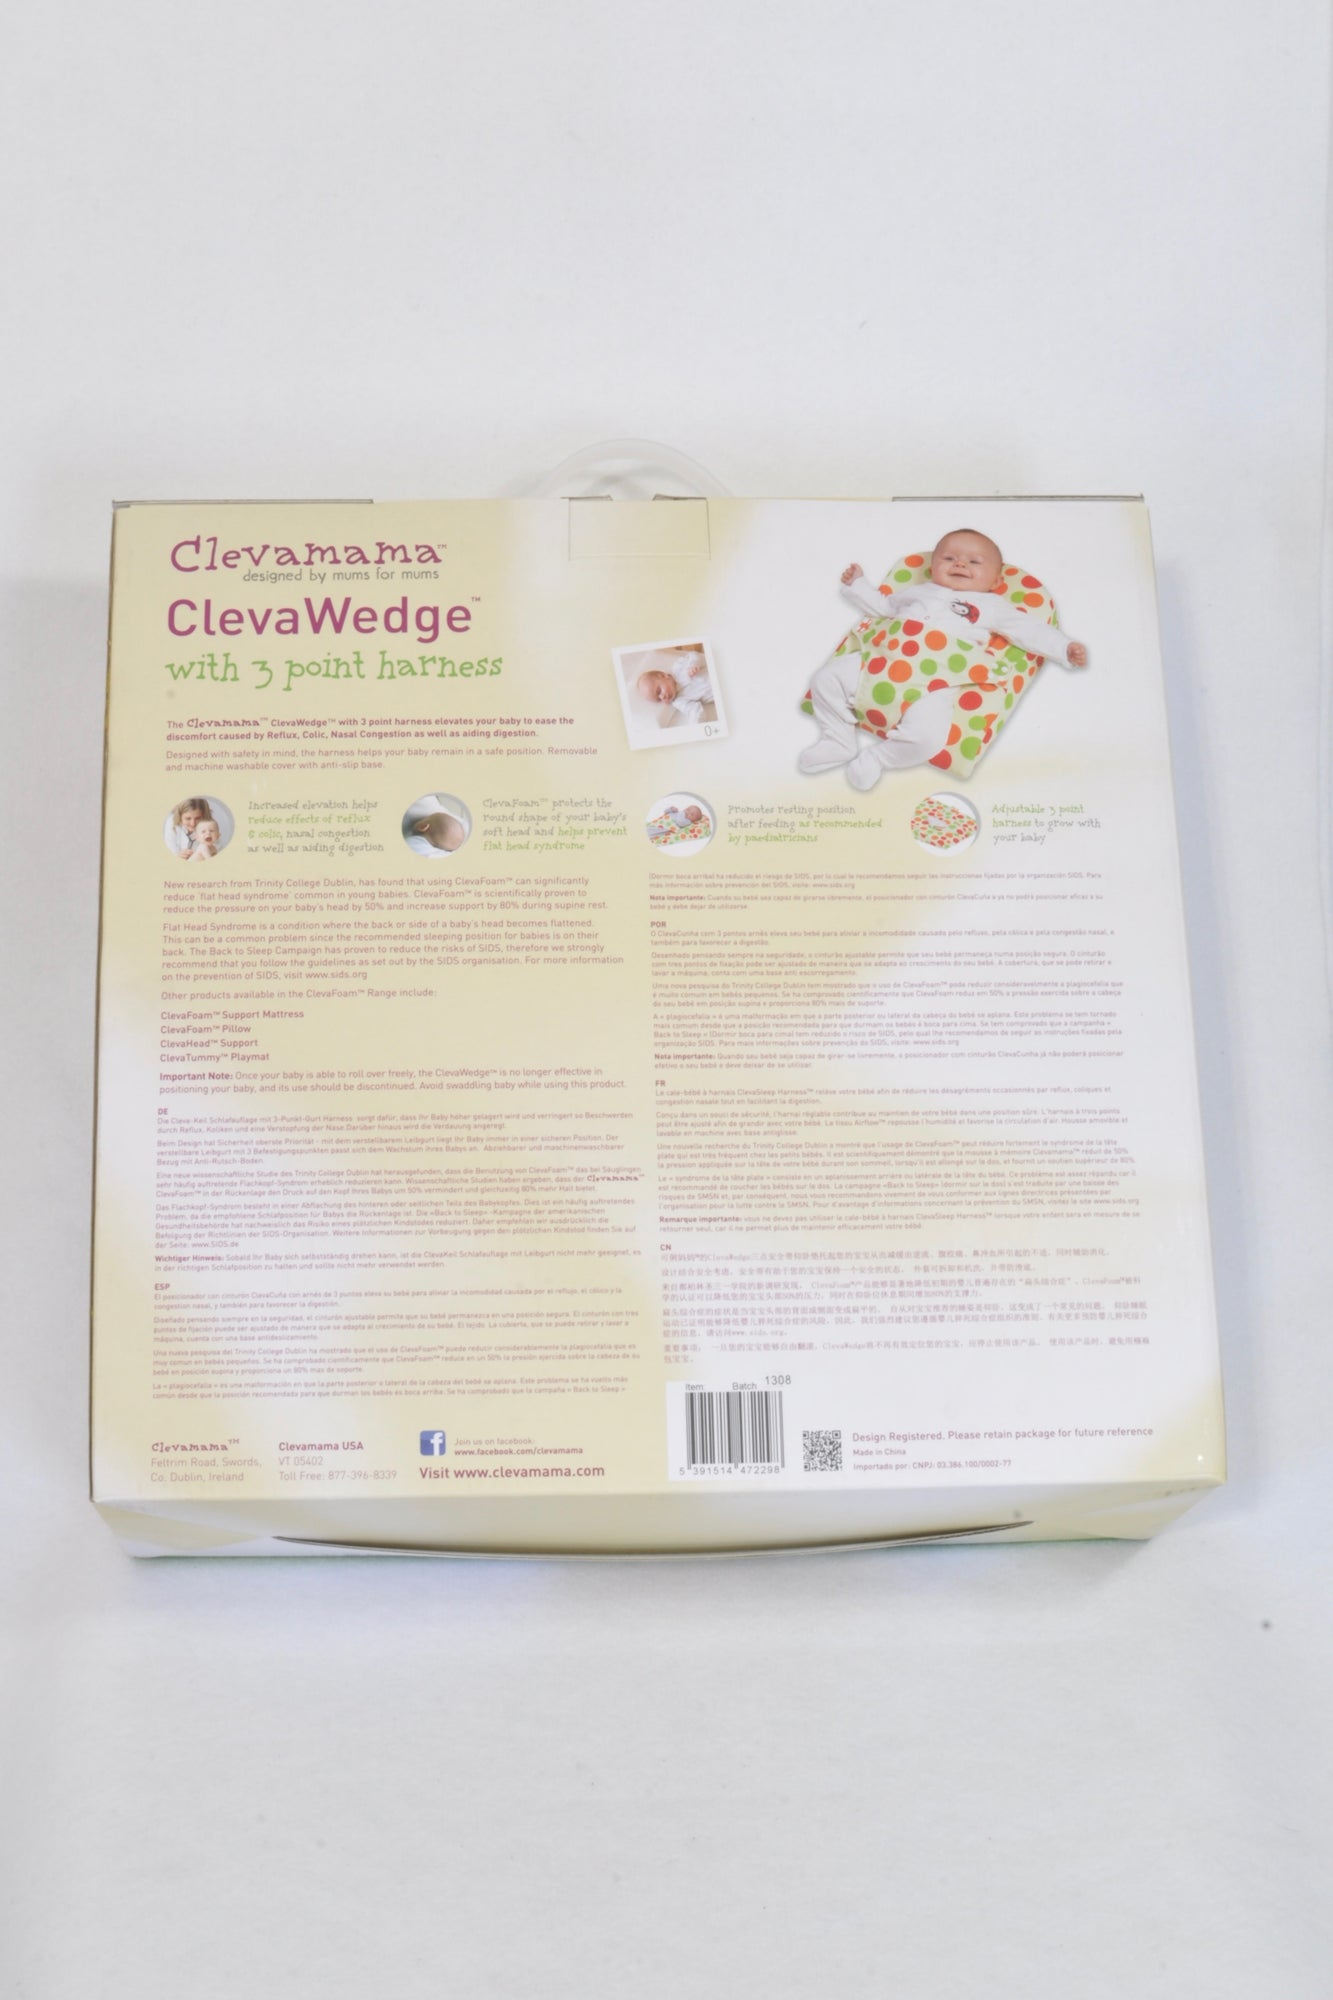 New ClevaMama ClevaWedge 3 Point Harness Sleep Accessory Unisex N-B to 6 months